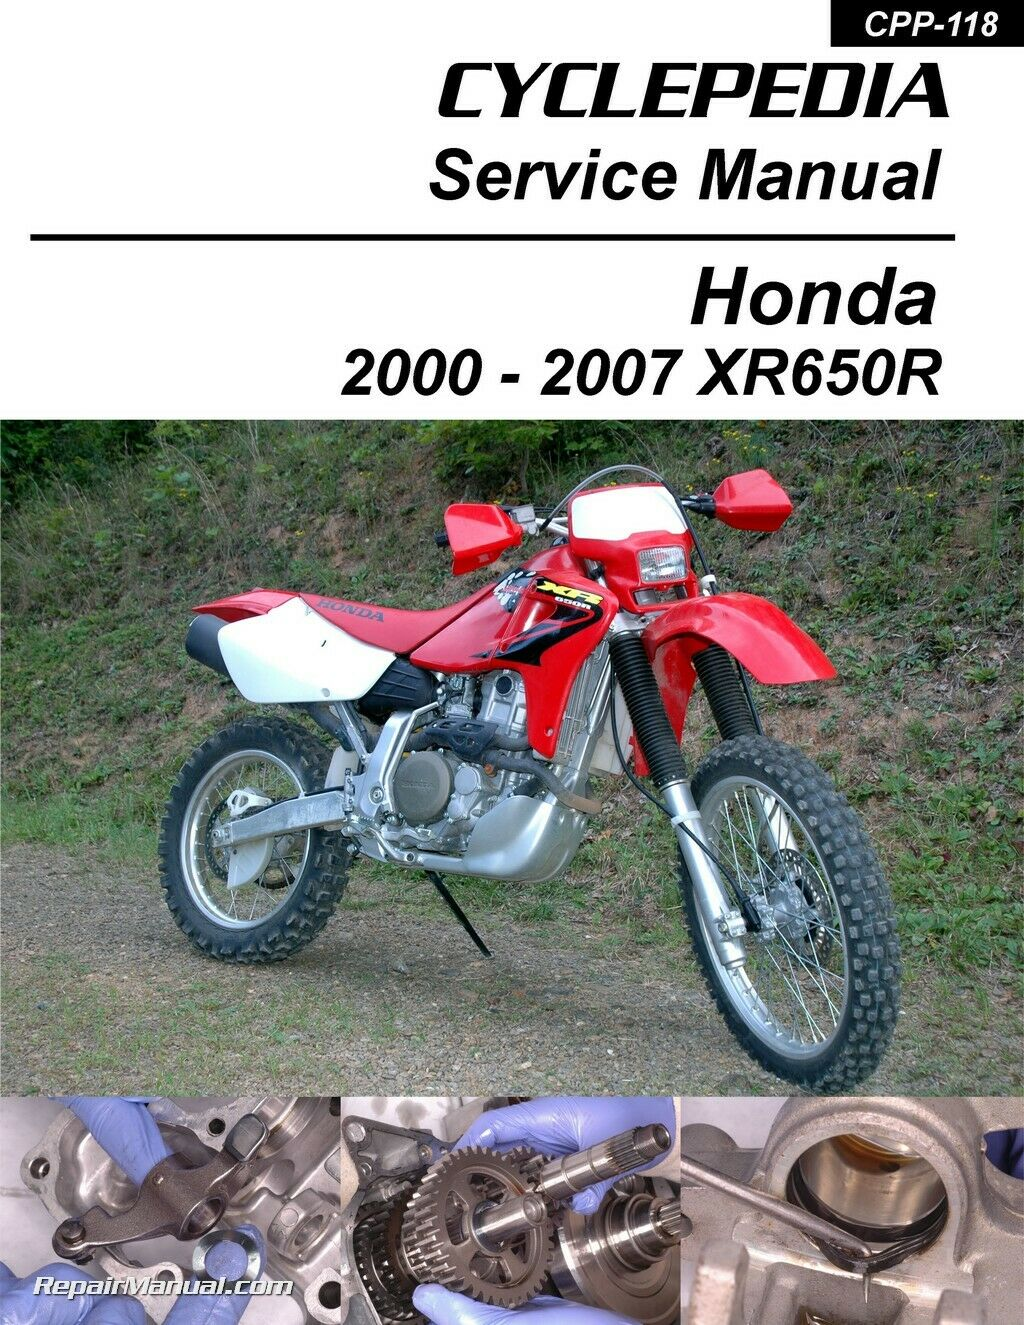 Honda XR650R Motorcycle Cyclepedia Printed Service Manual 1 of 1Only 4  available ...